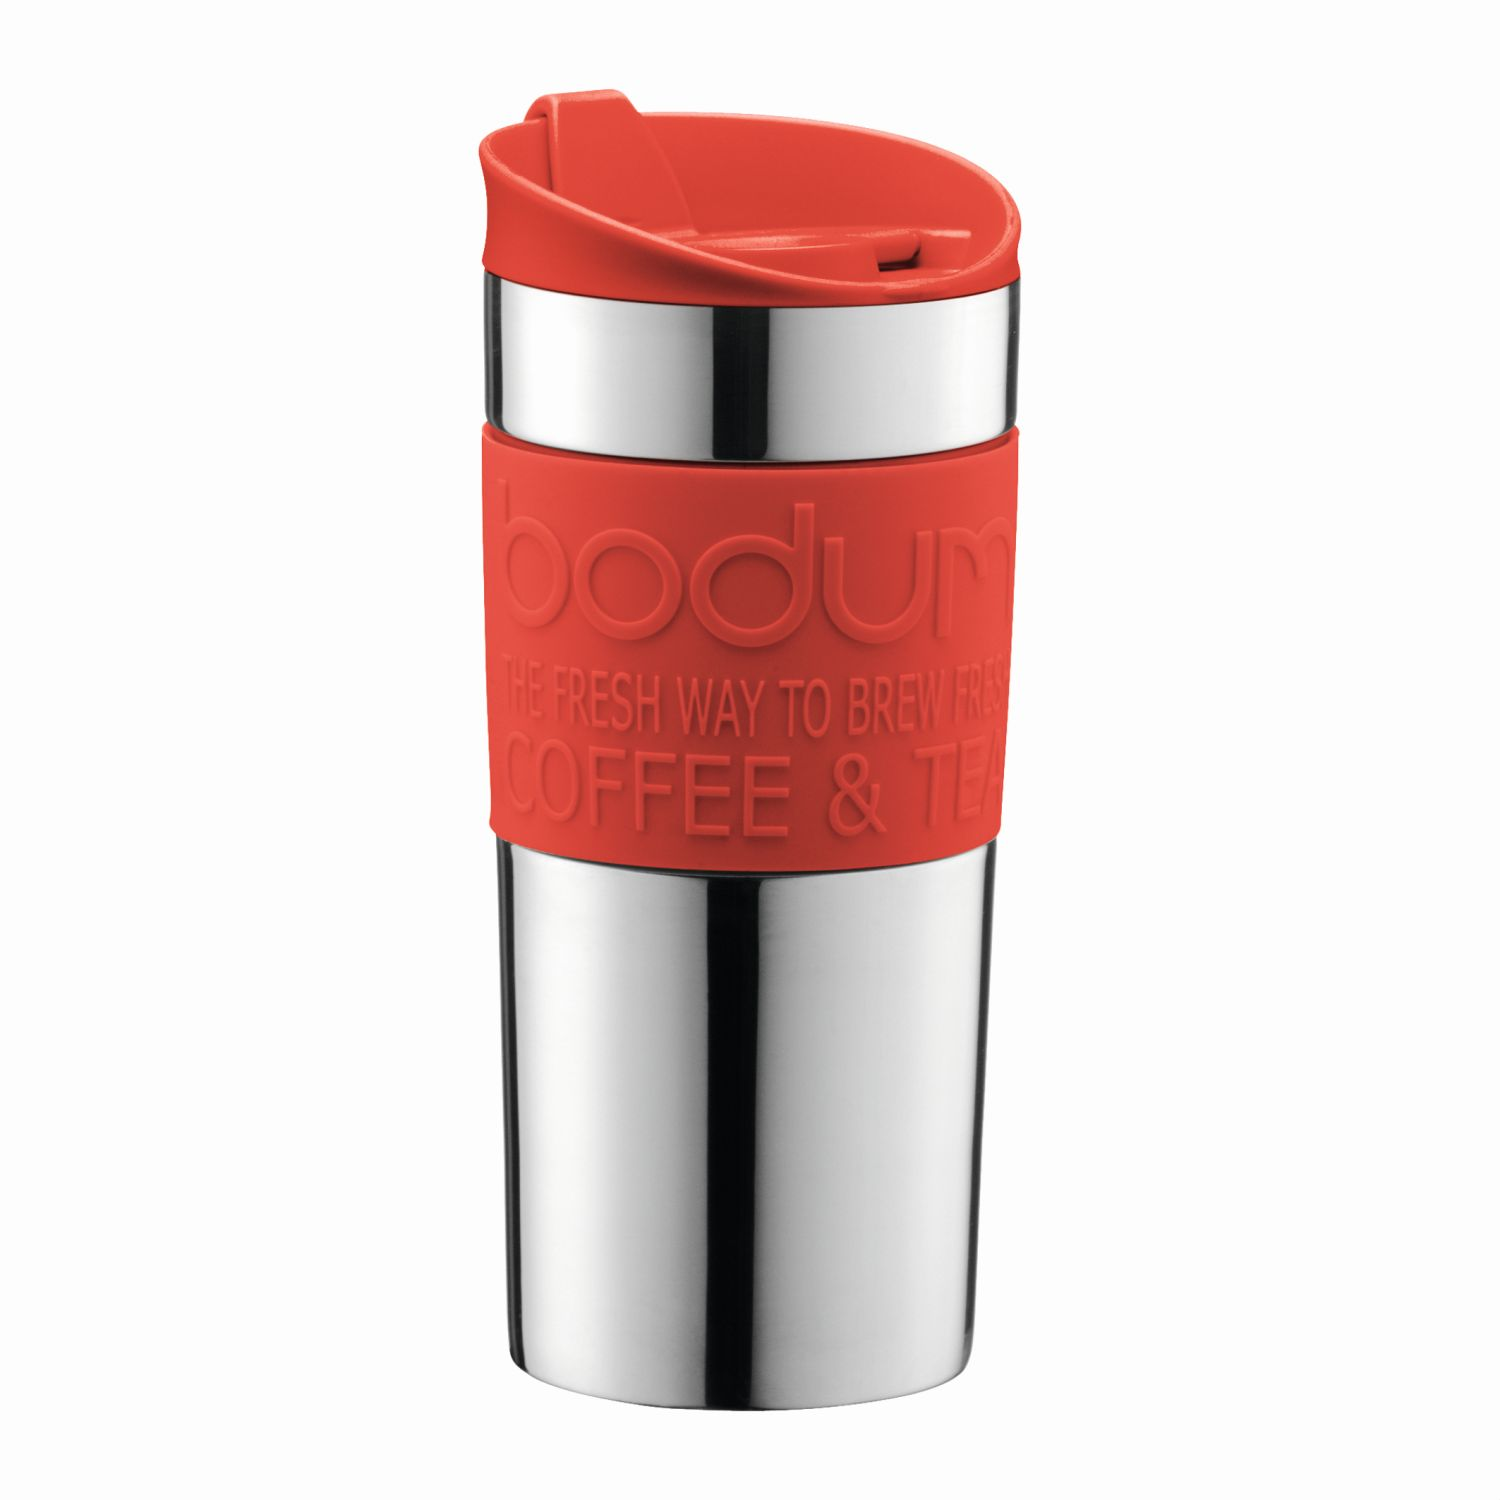 Bodum Travel Mug Red